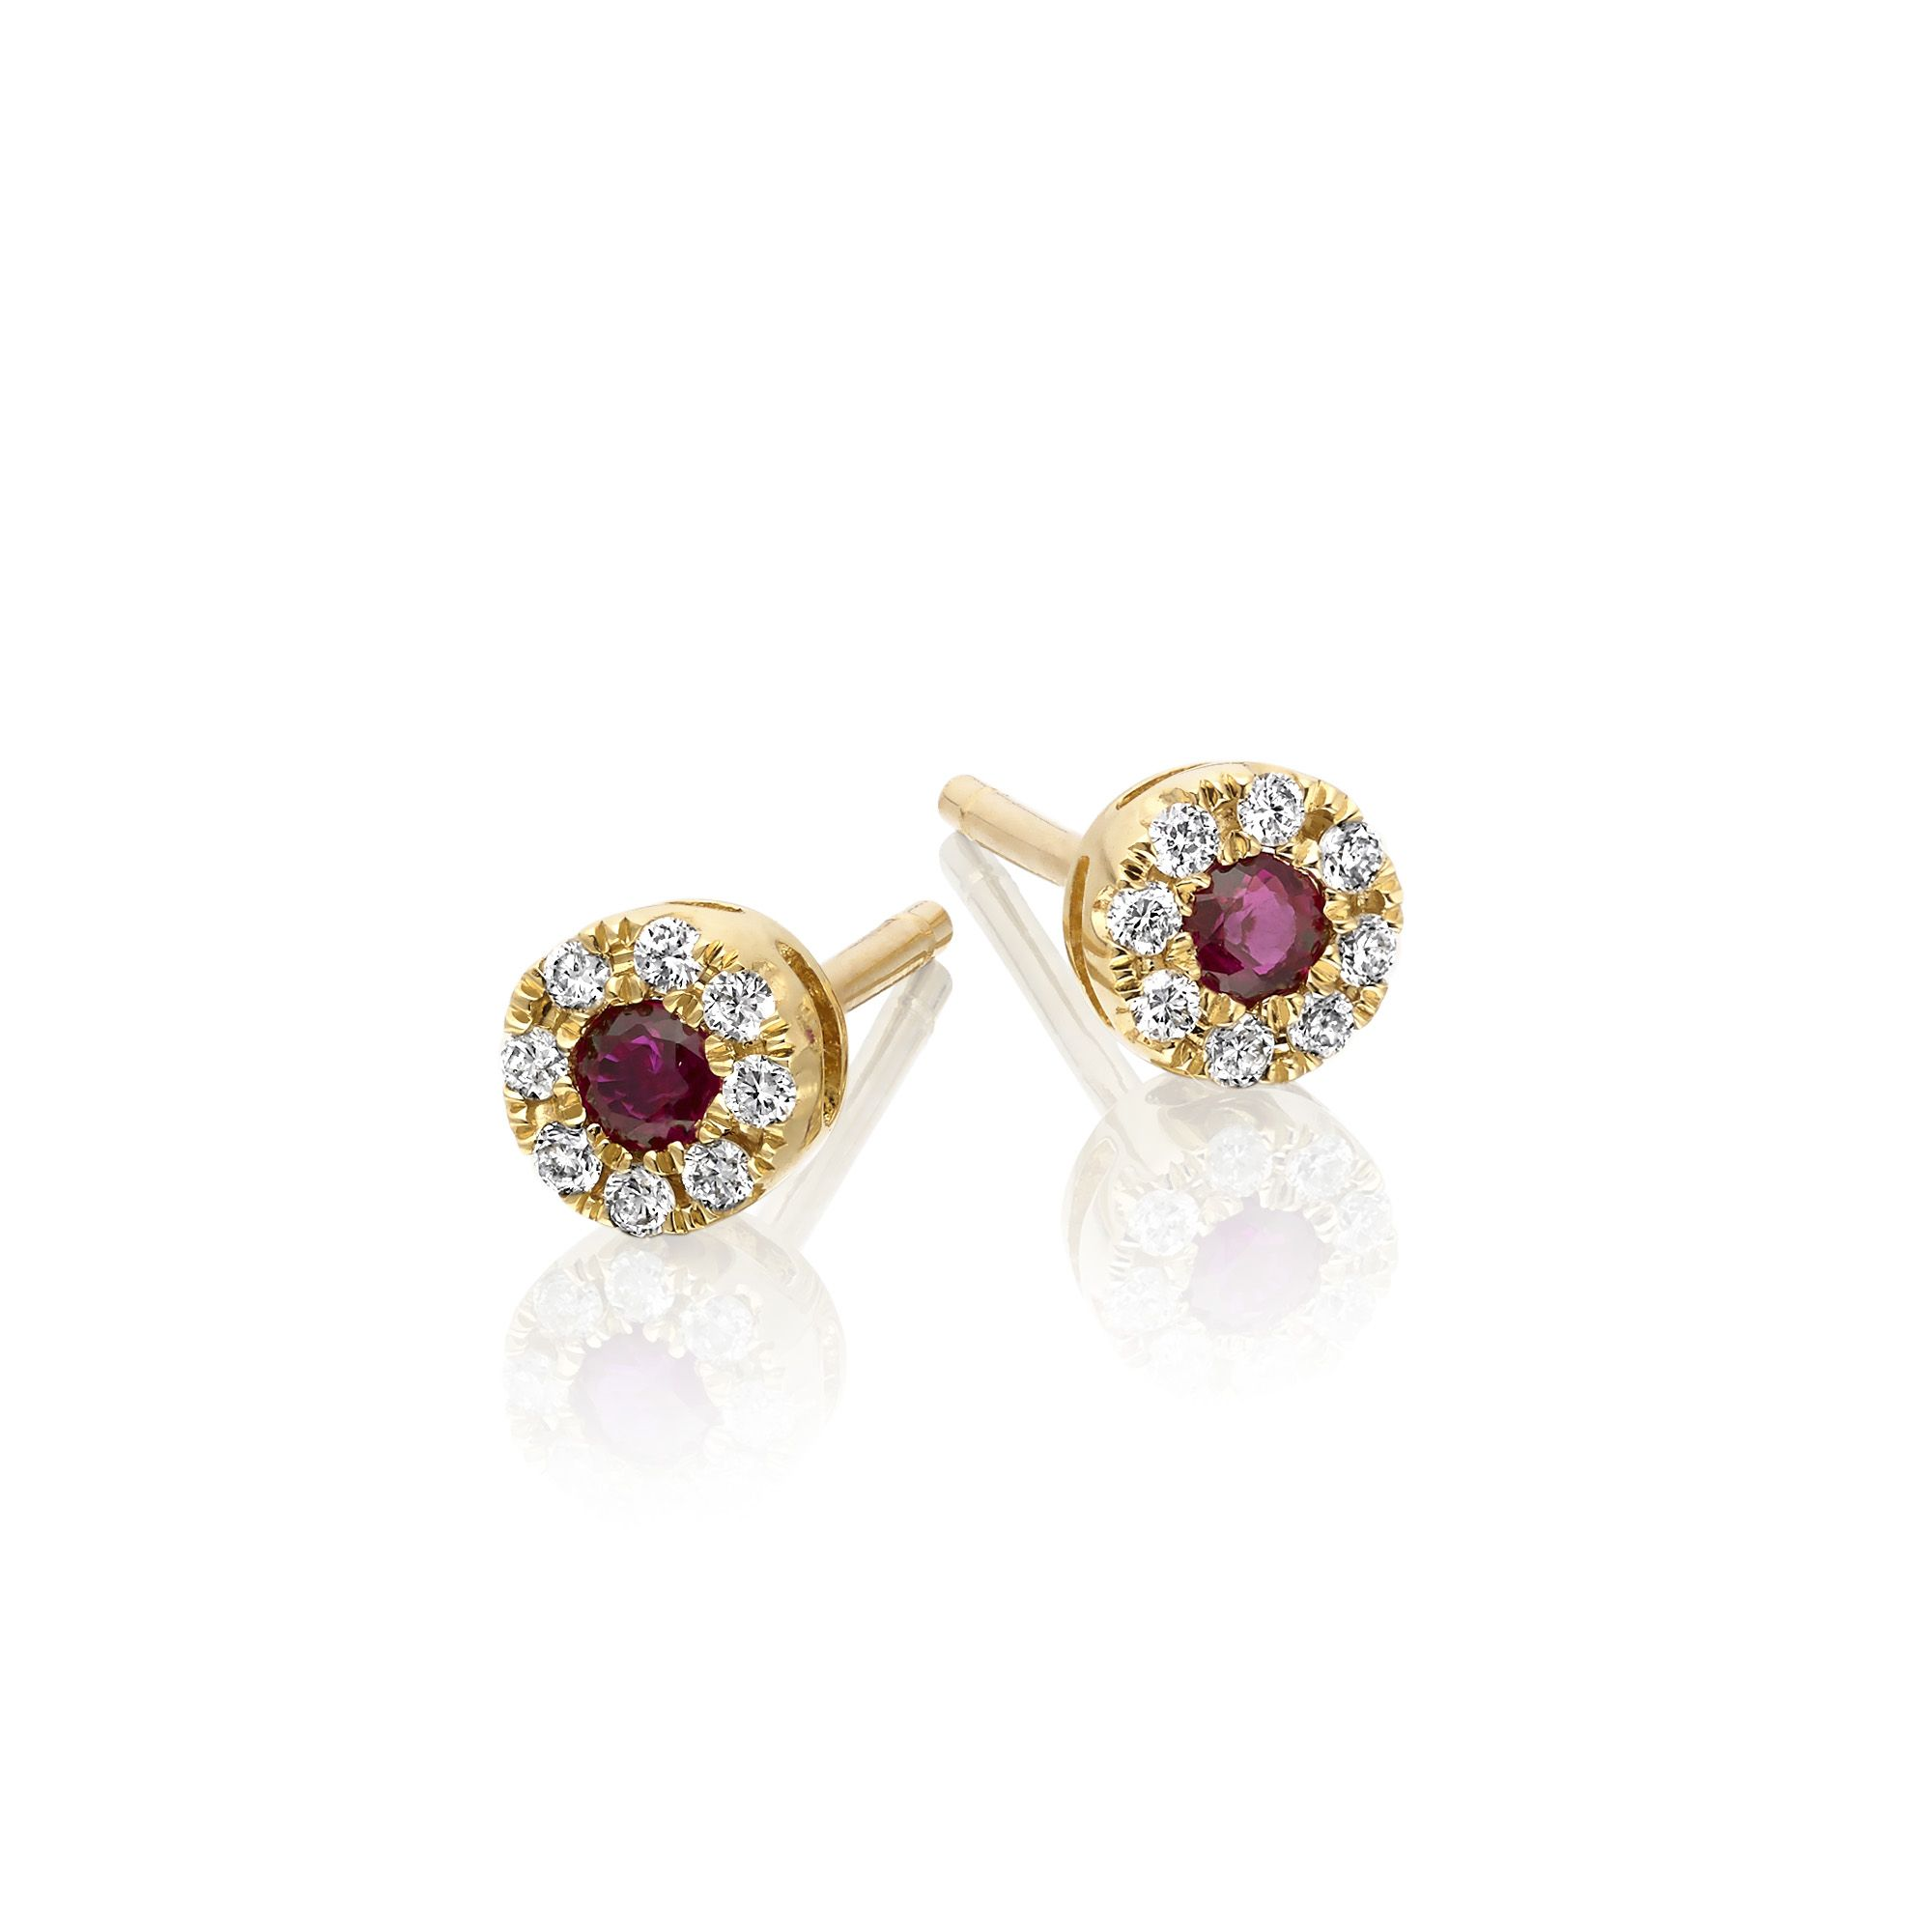 These lovely red ruby and diamond stud earrings feature brilliant